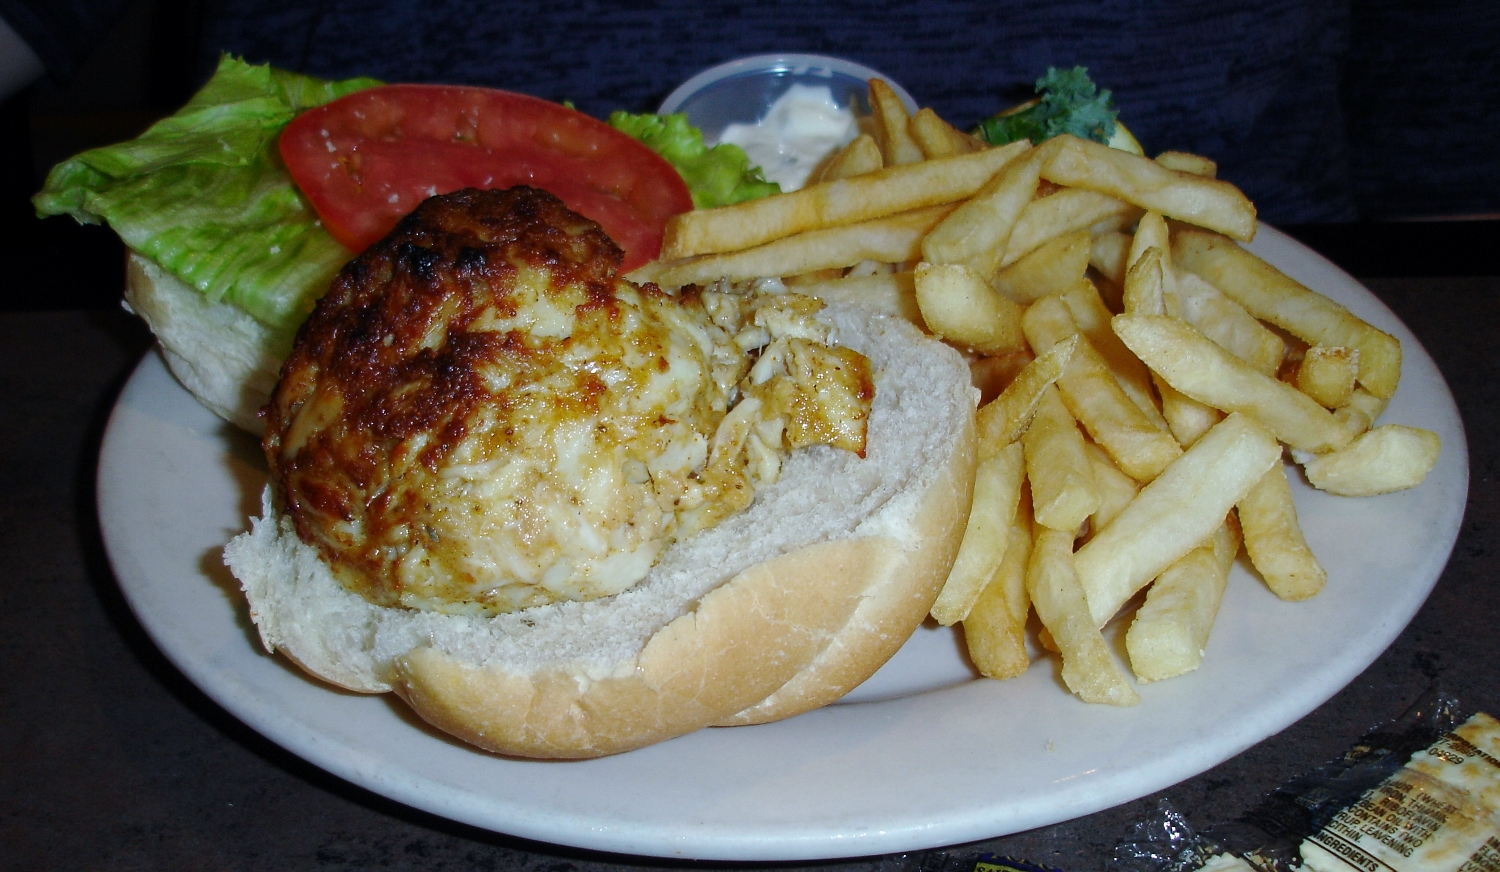 With crab cakes this good, we recommend ditching the bun and eating them forkful by delectable forkful.